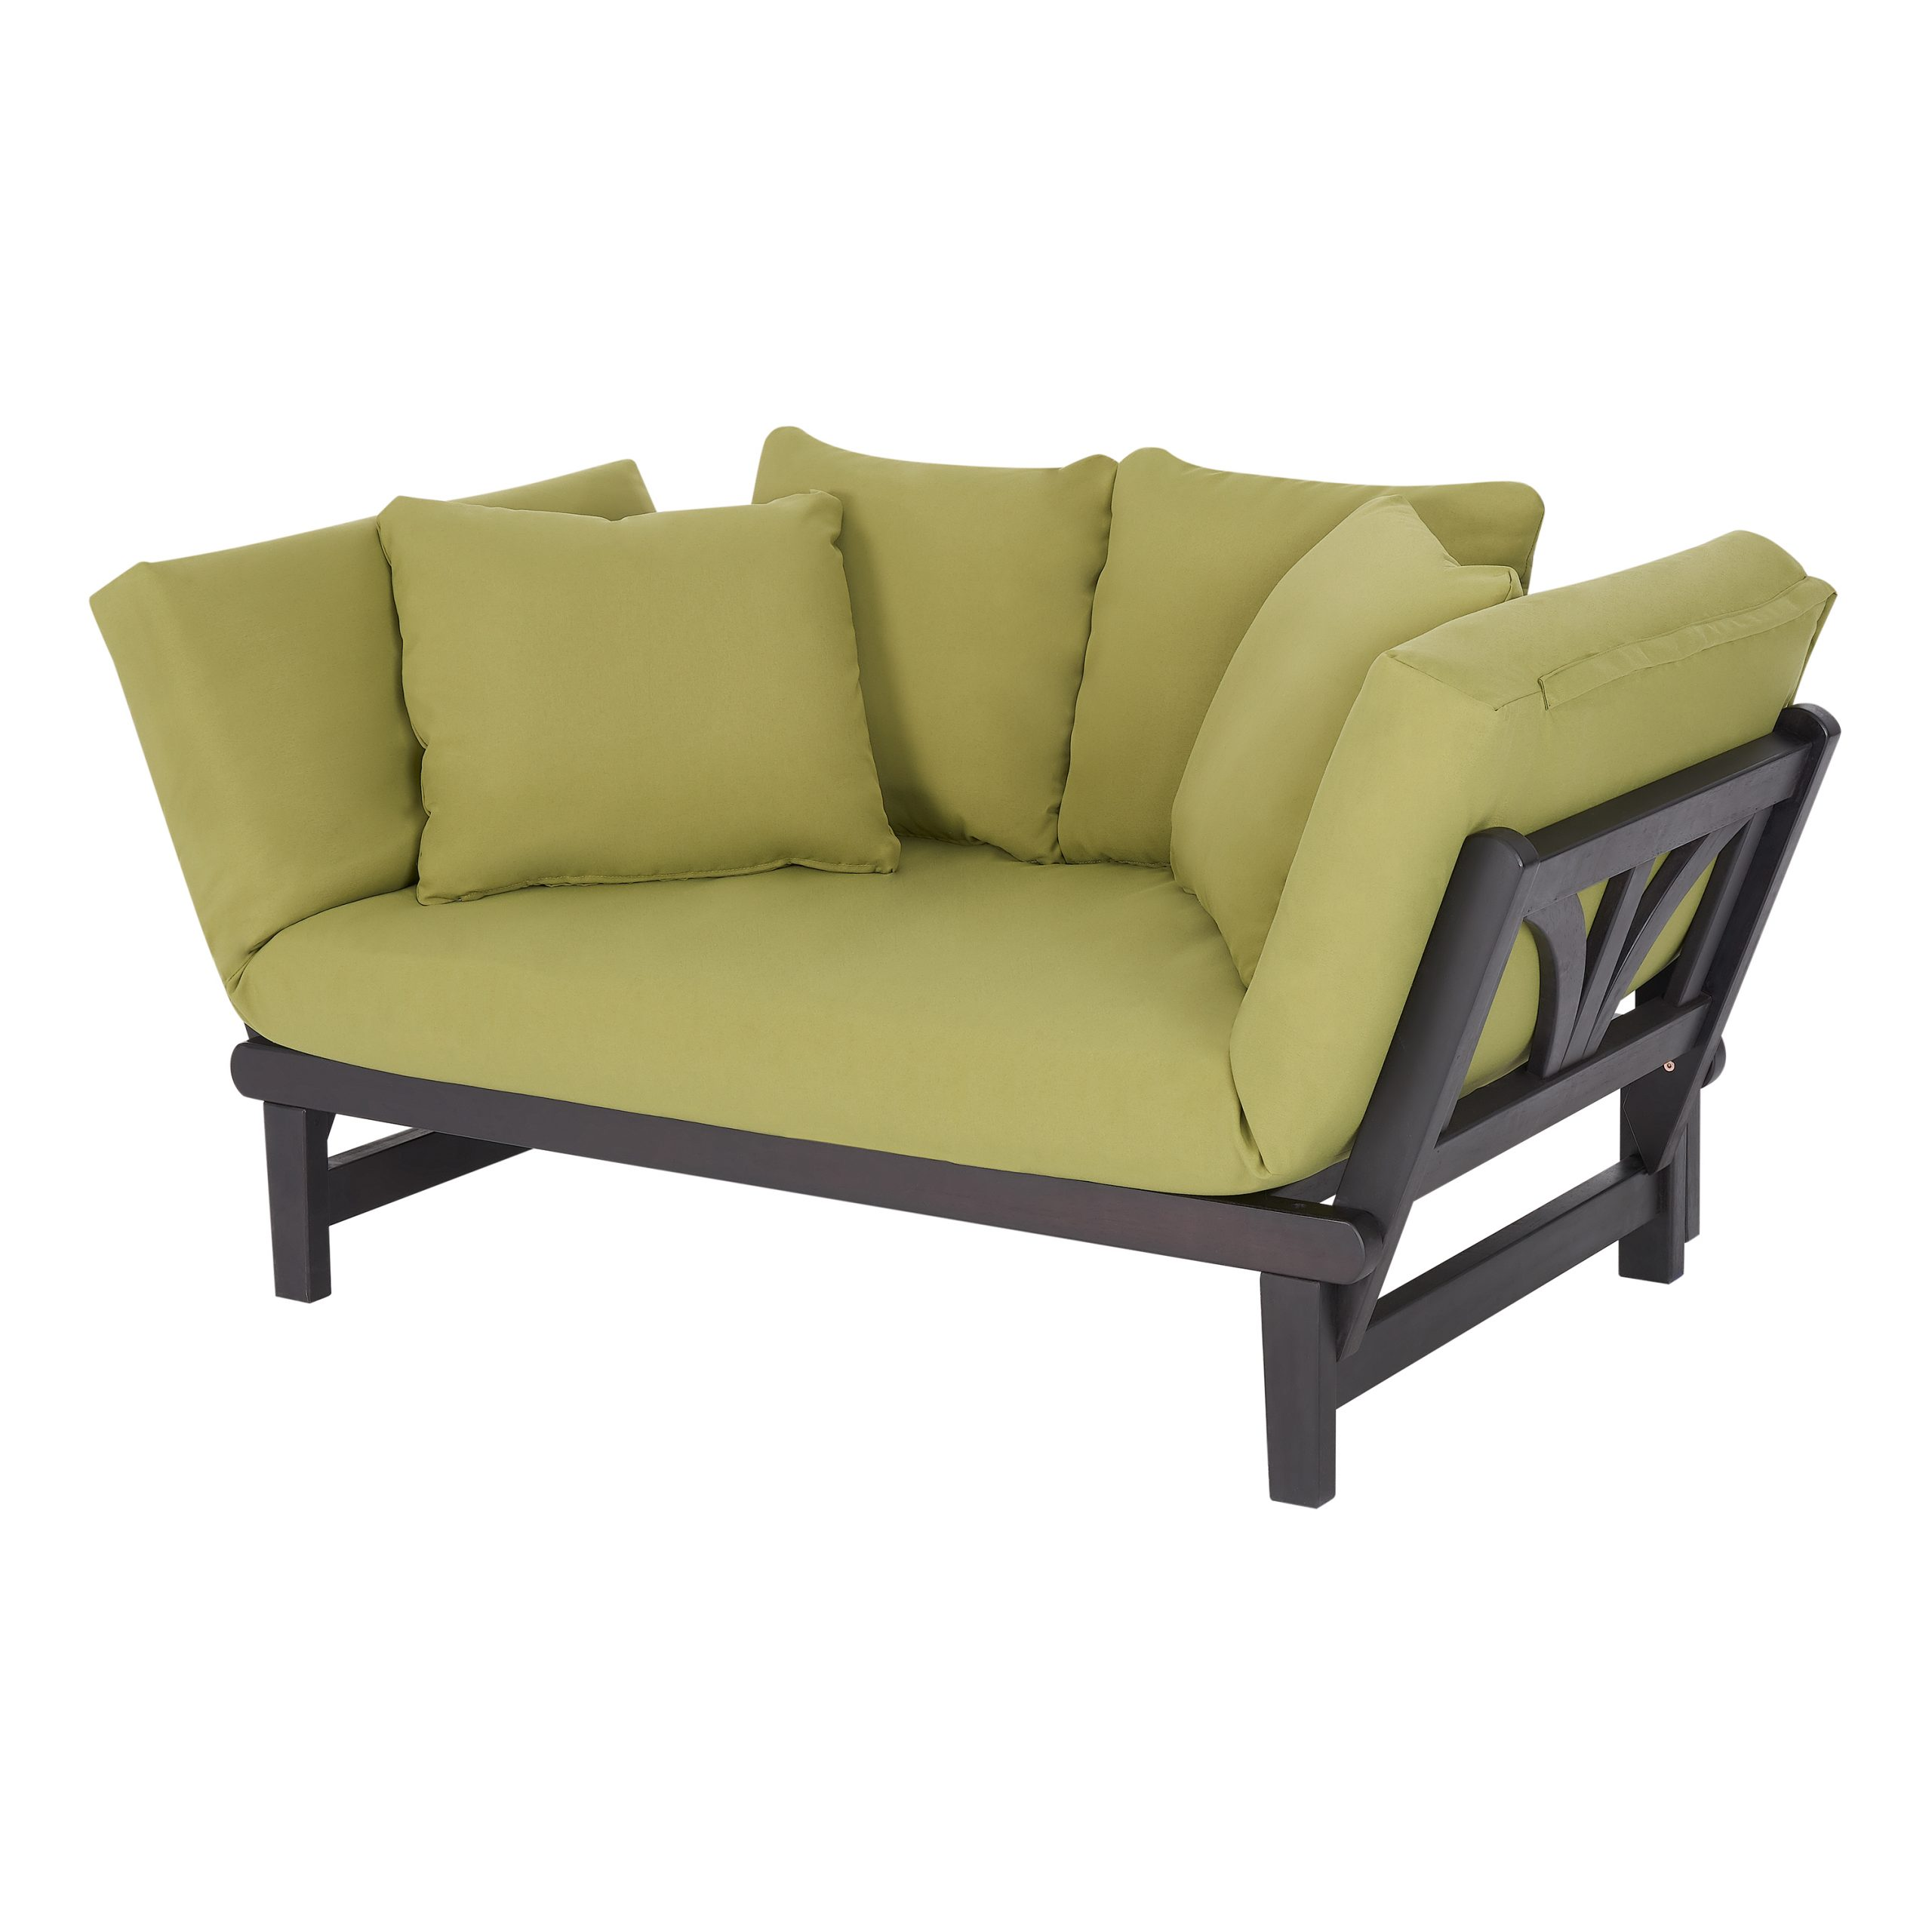 Better Homes & Gardens Delahey Convertible Studio Outdoor For Convertible Sofas (View 5 of 15)